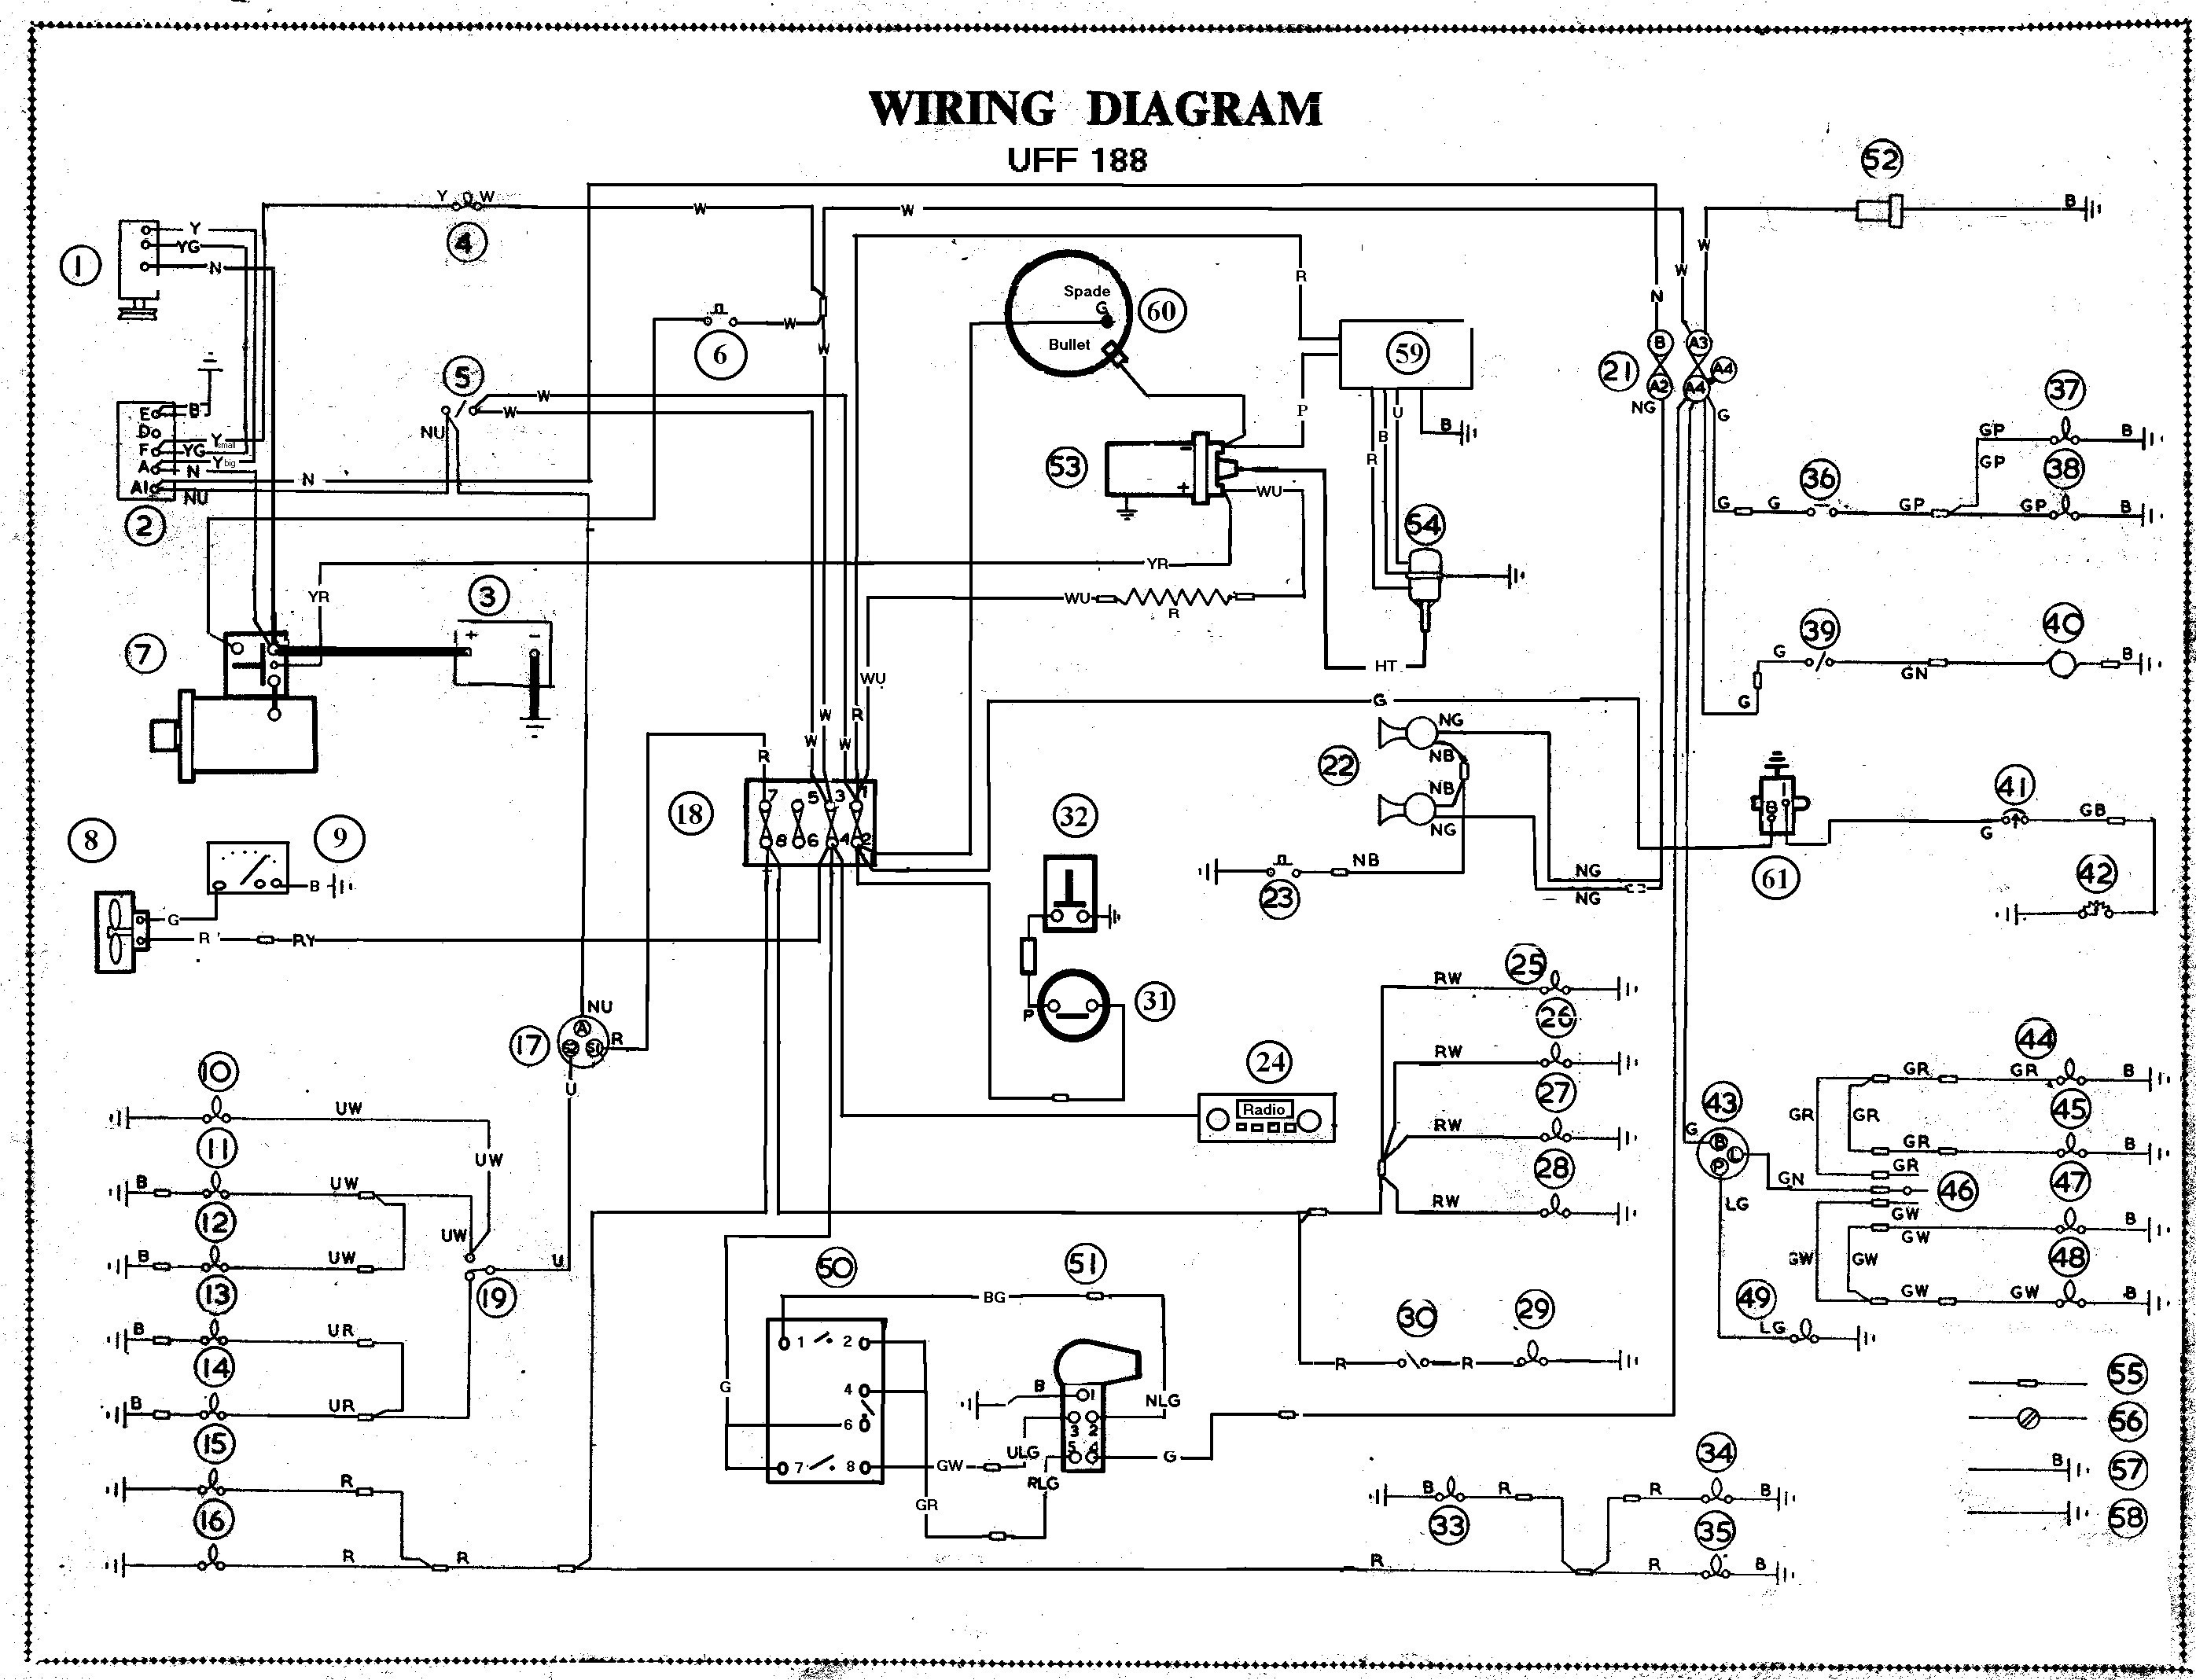 Zivan Diagram Gem Car Wiring - Wiring Diagram Data - 48 Volt Battery Wiring Diagram